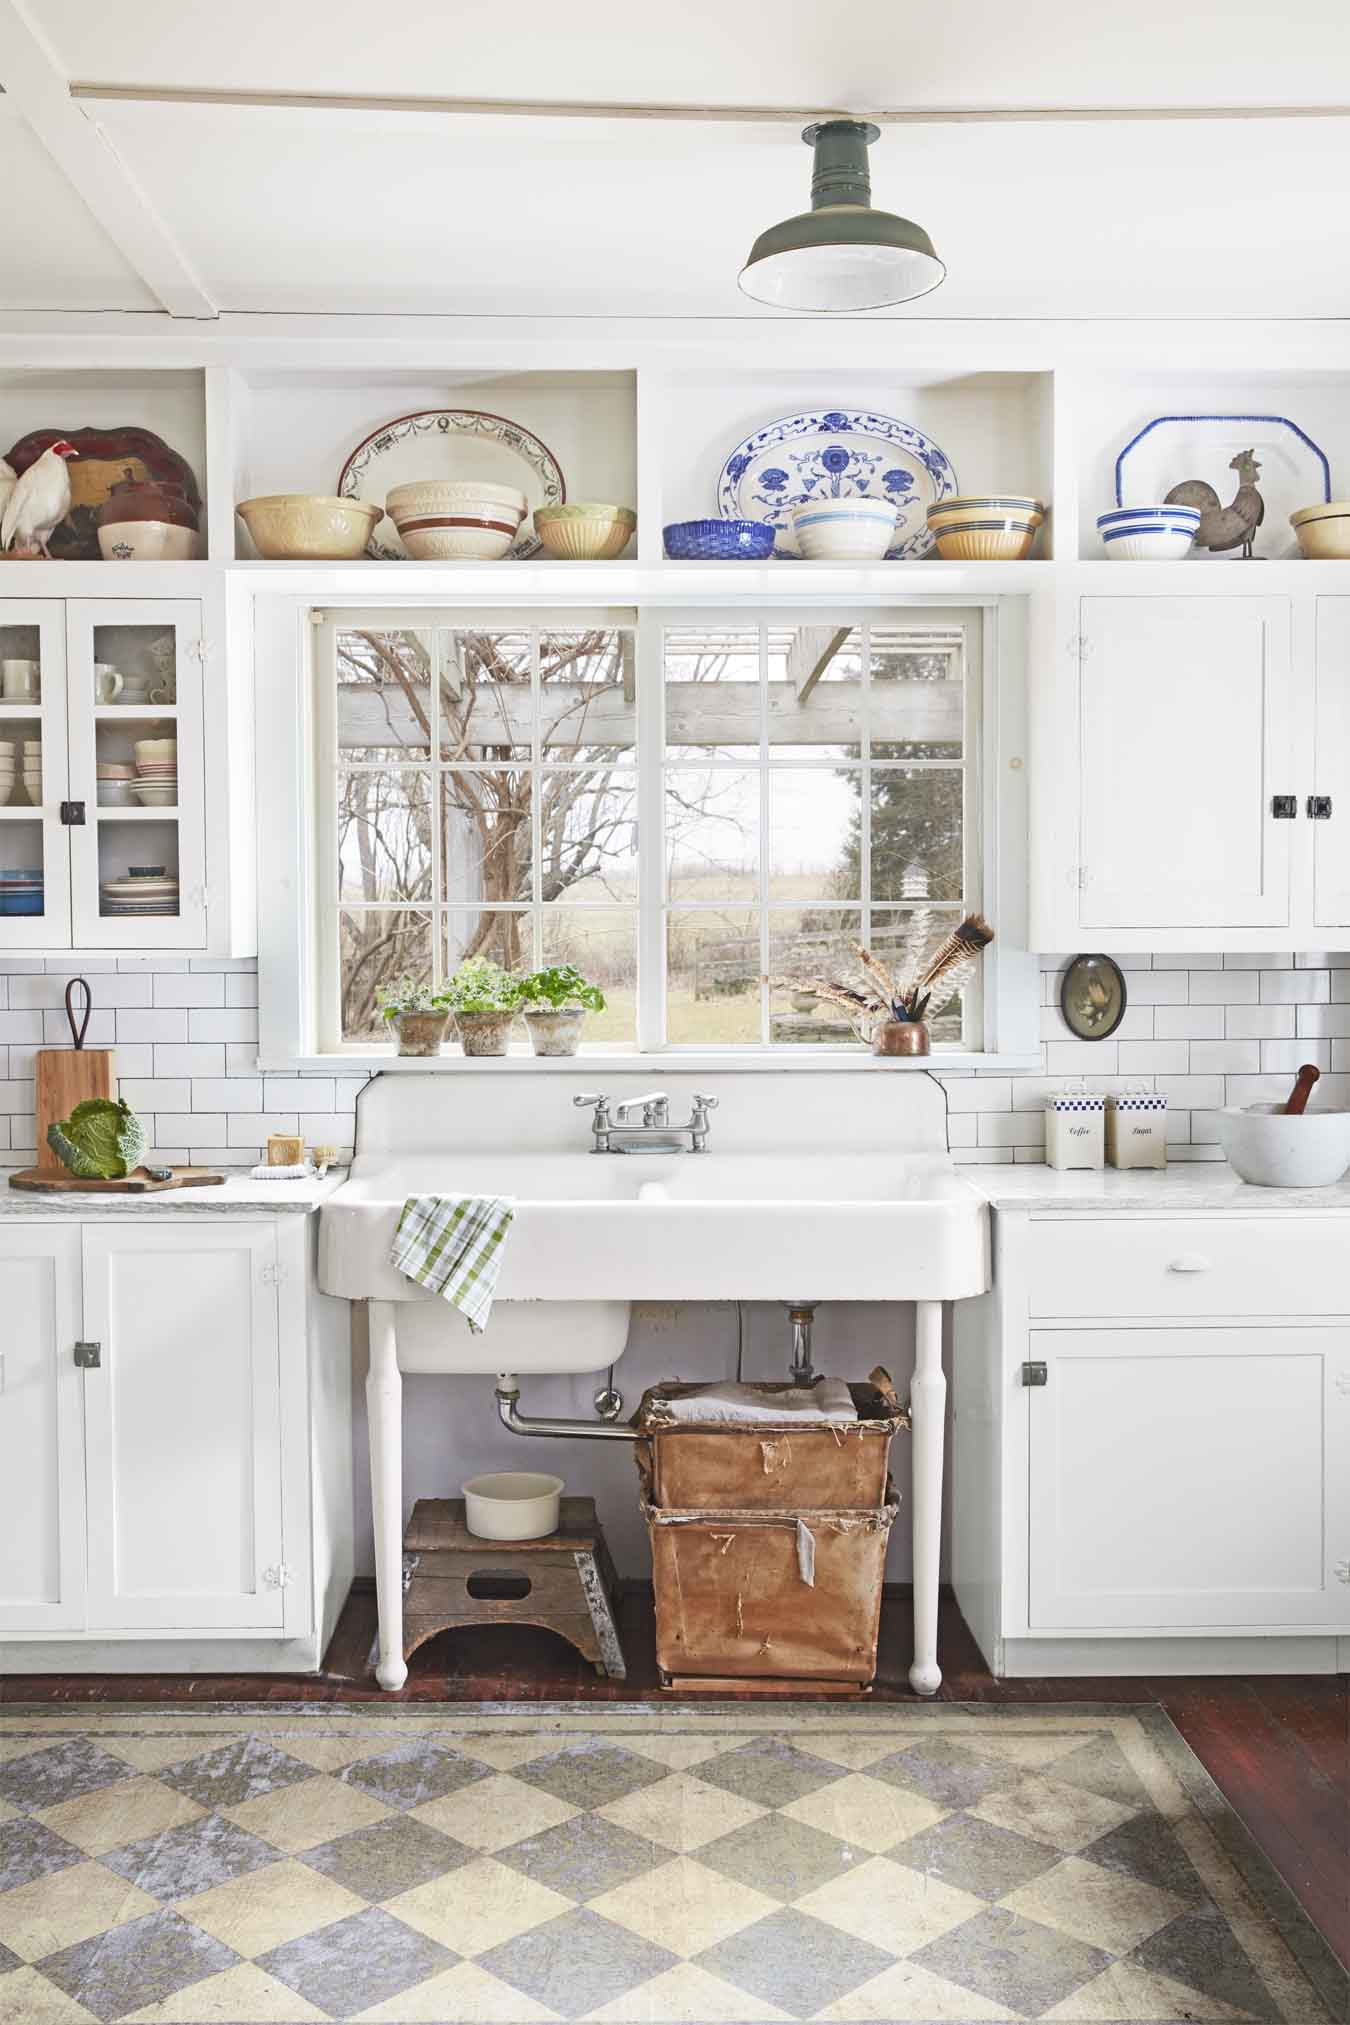 Kitchen Ideas Vintage Of 20 Vintage Kitchen Decorating Ideas Design Inspiration